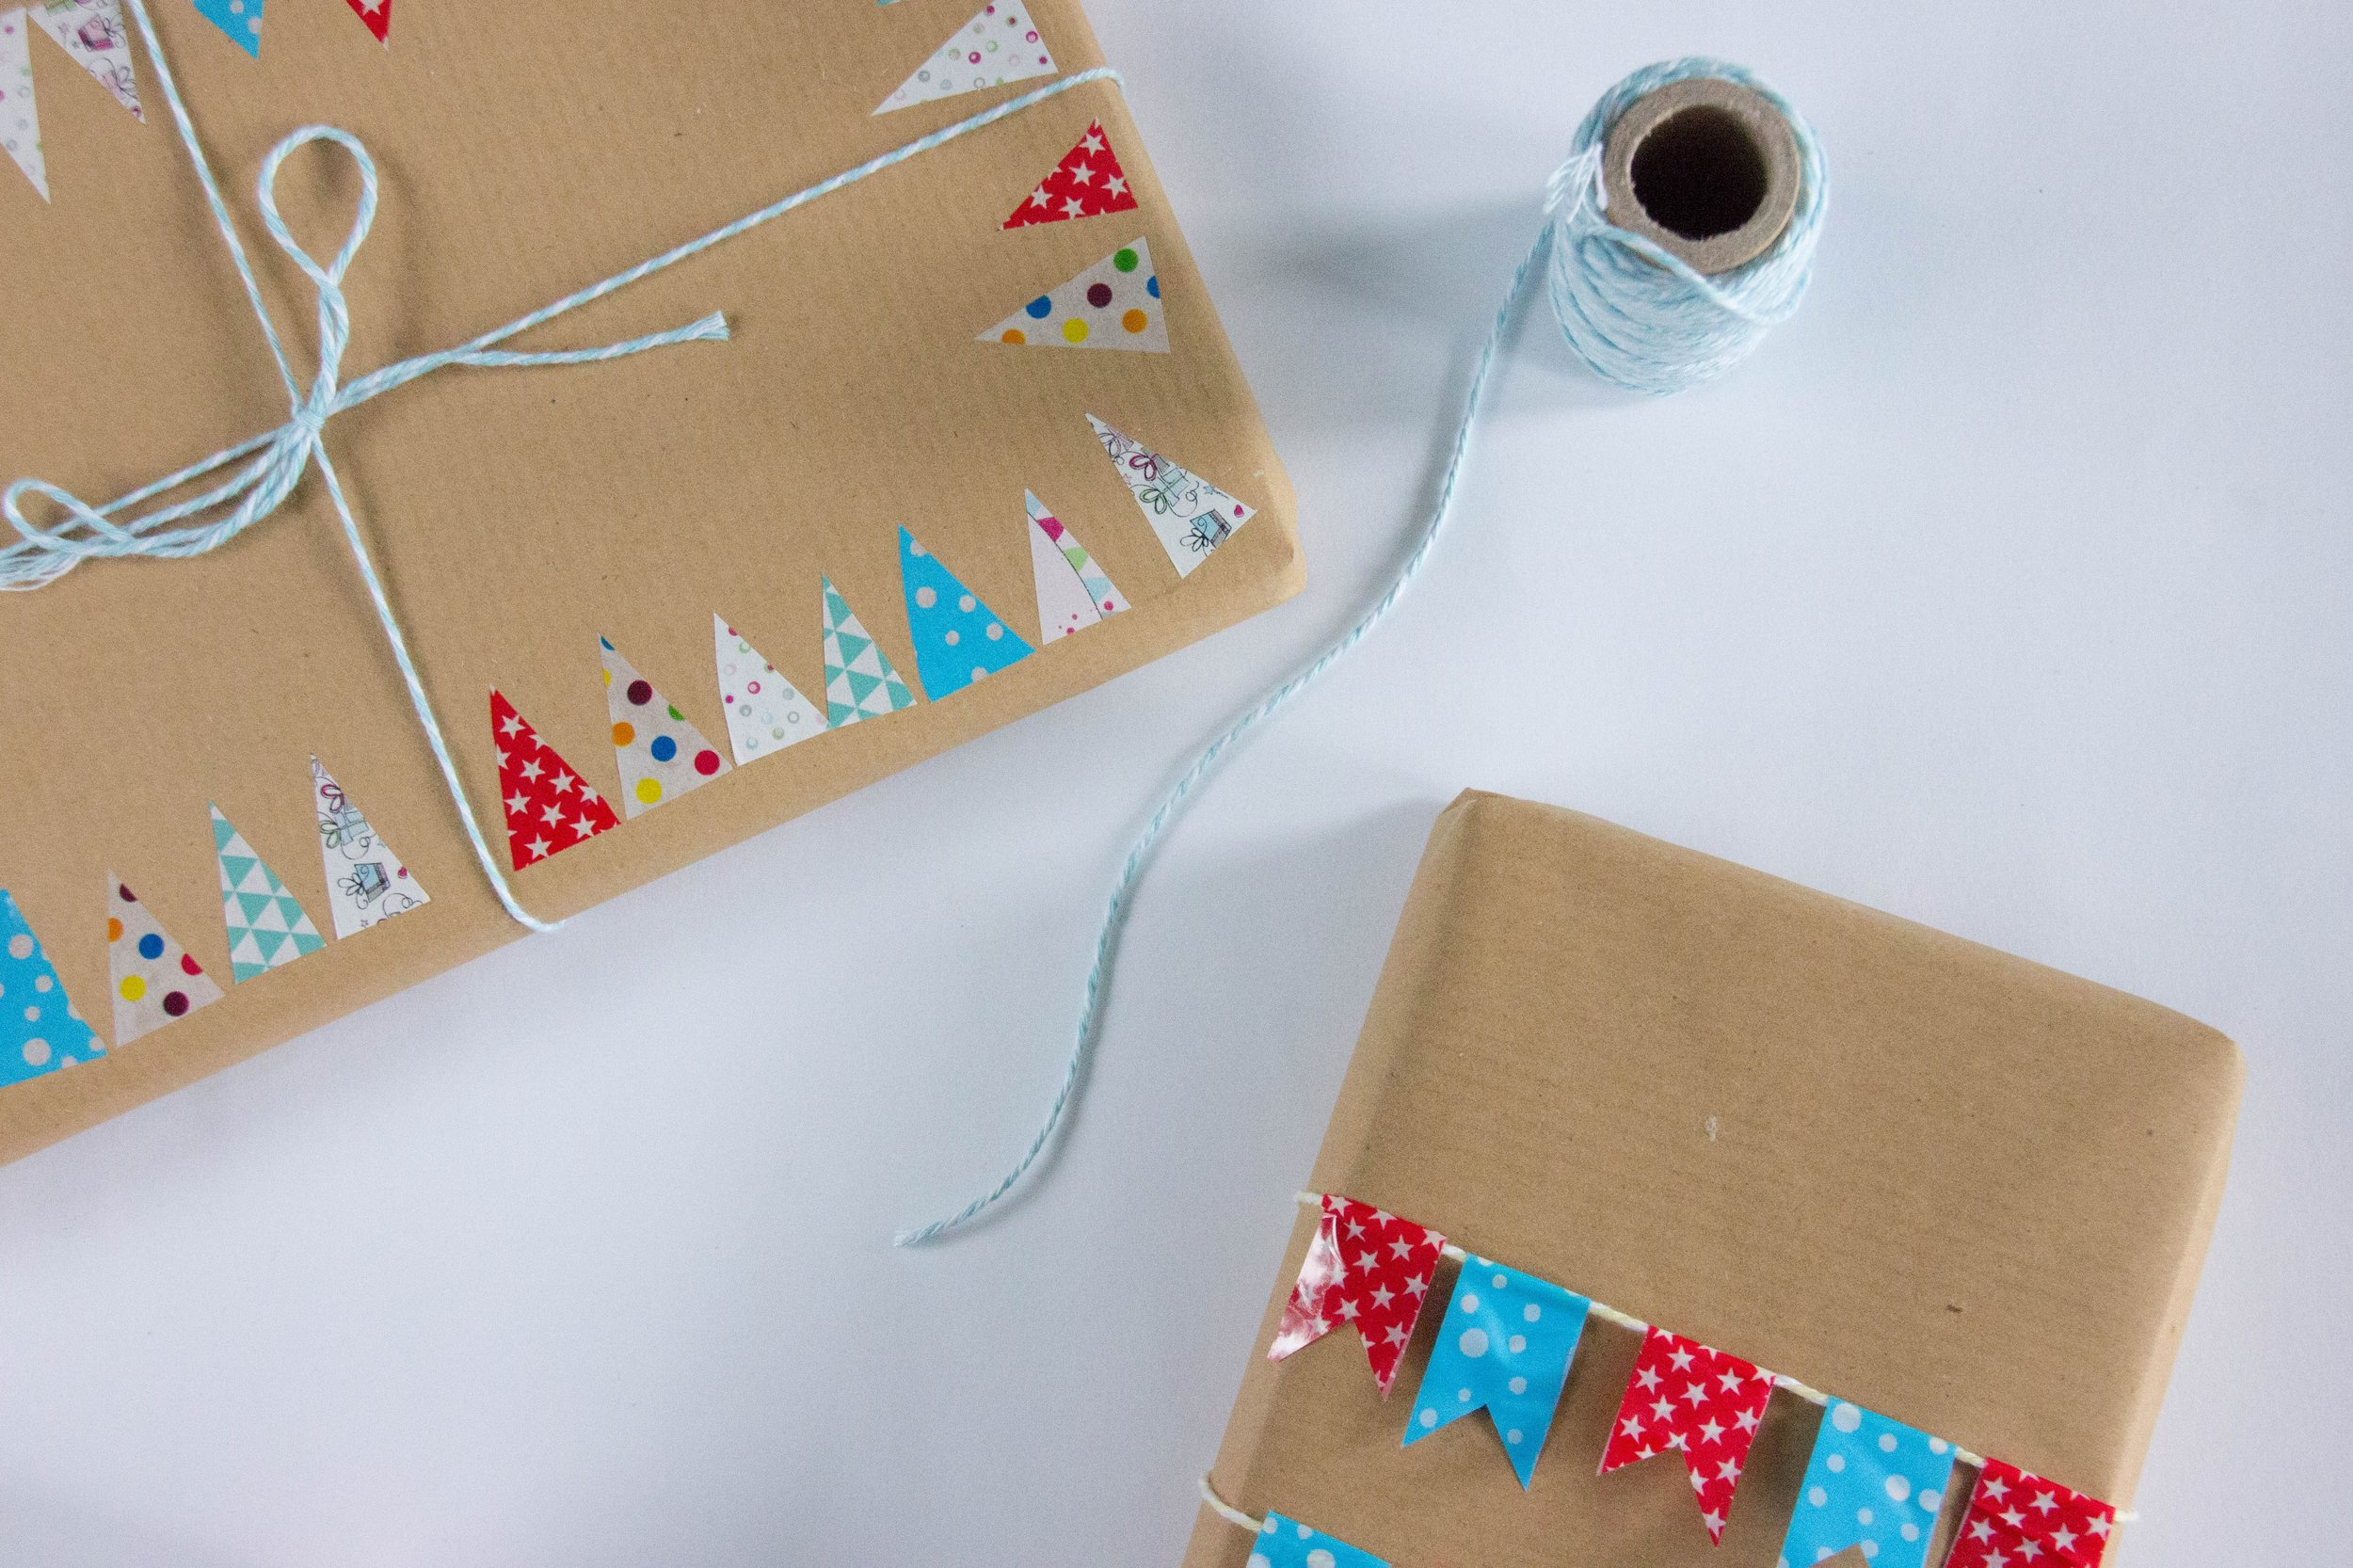 box-decorating-gift-264869.jpg